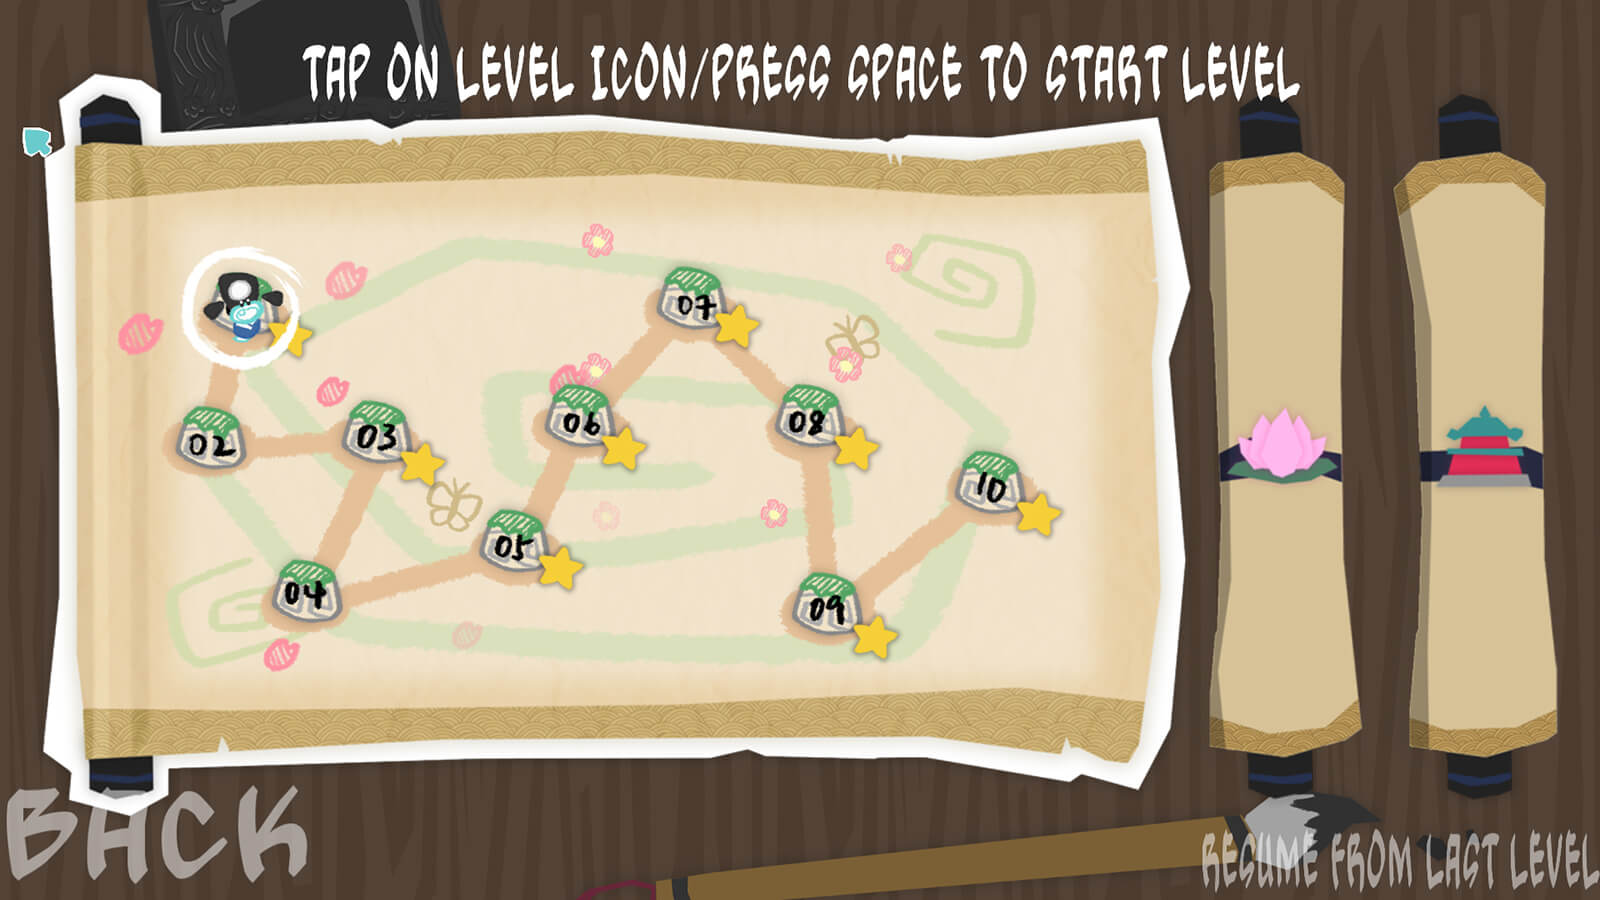 A level-select screen in which a small blue character is seen on a hand-drawn-style papercraft map on an unfurled scroll.